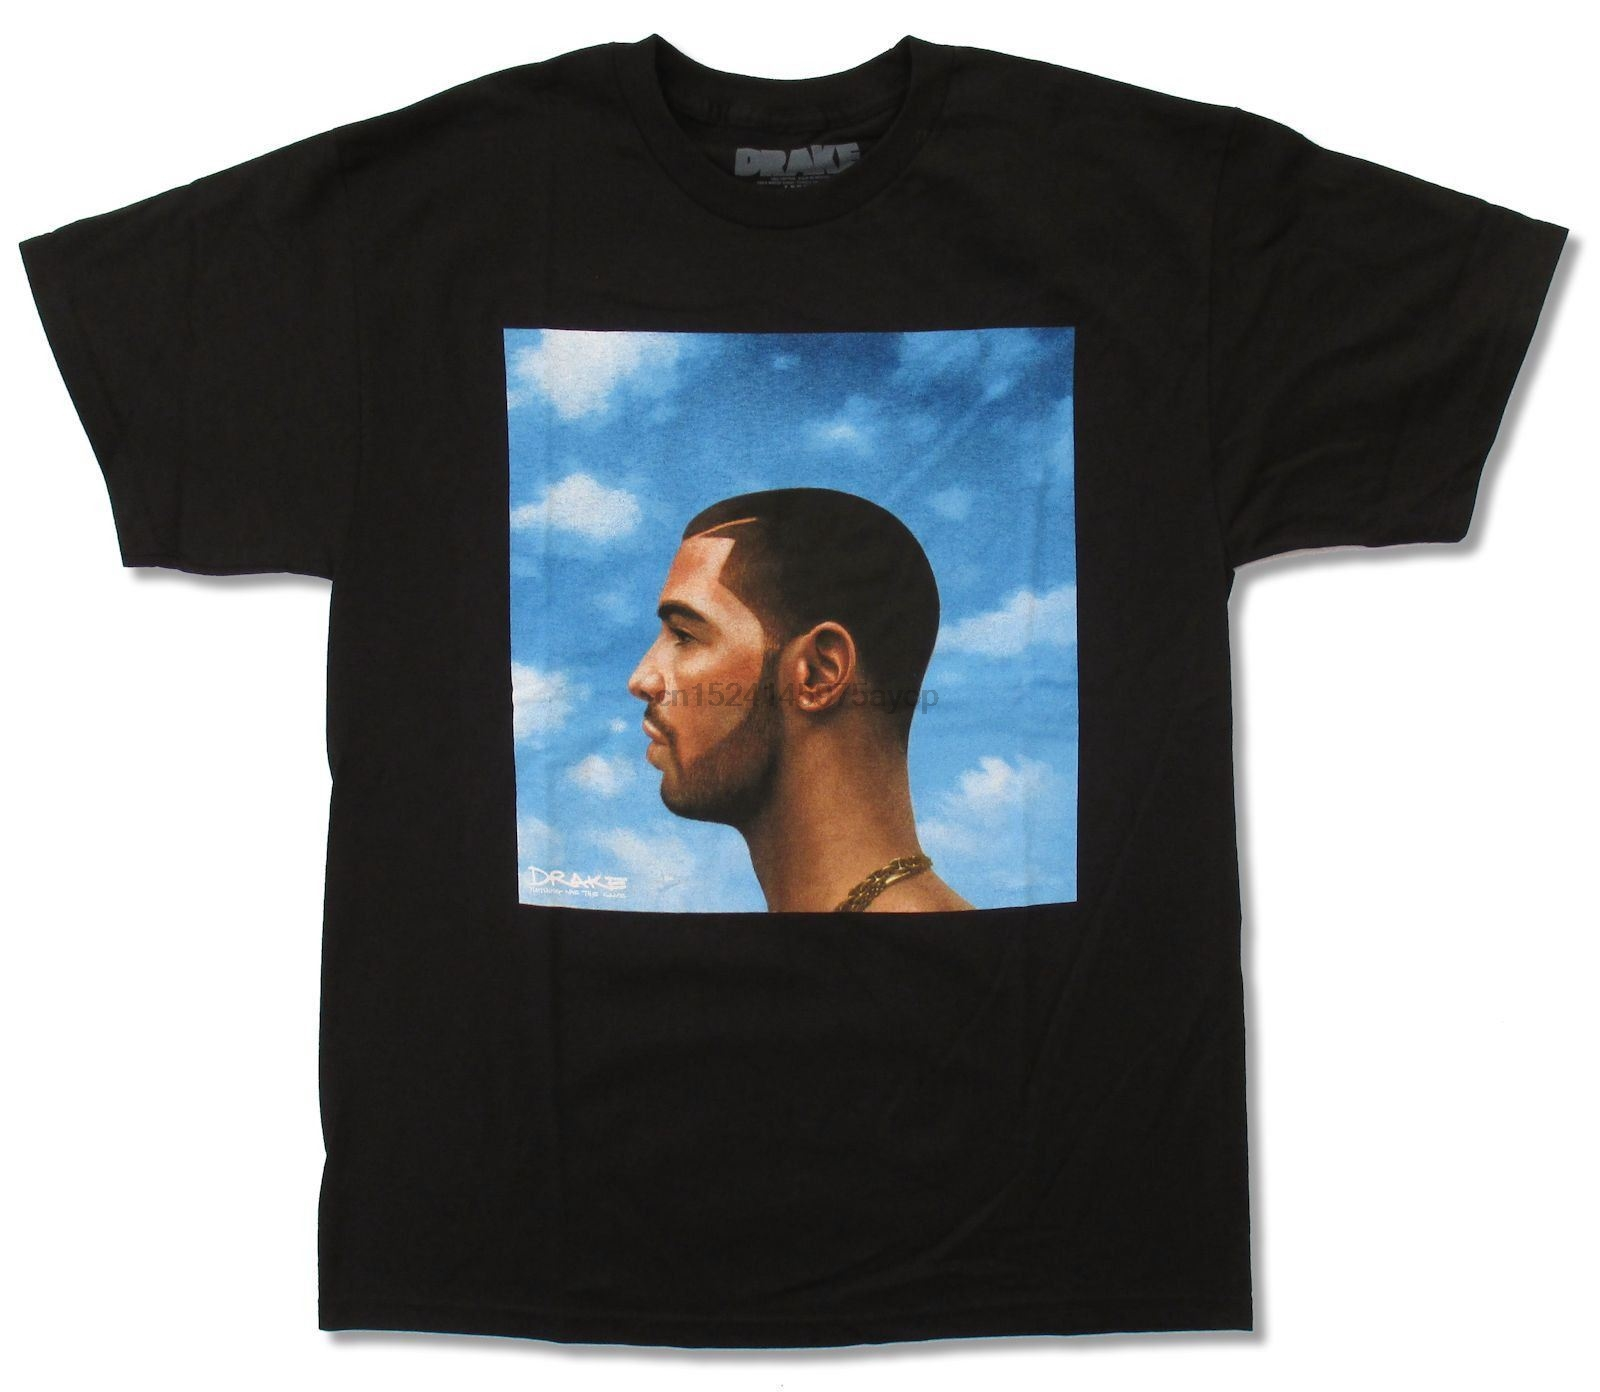 Drake Older Cover Black T Shirt New Official Rap Singer Nothing Was The Same P Male Best Selling T Shirt image